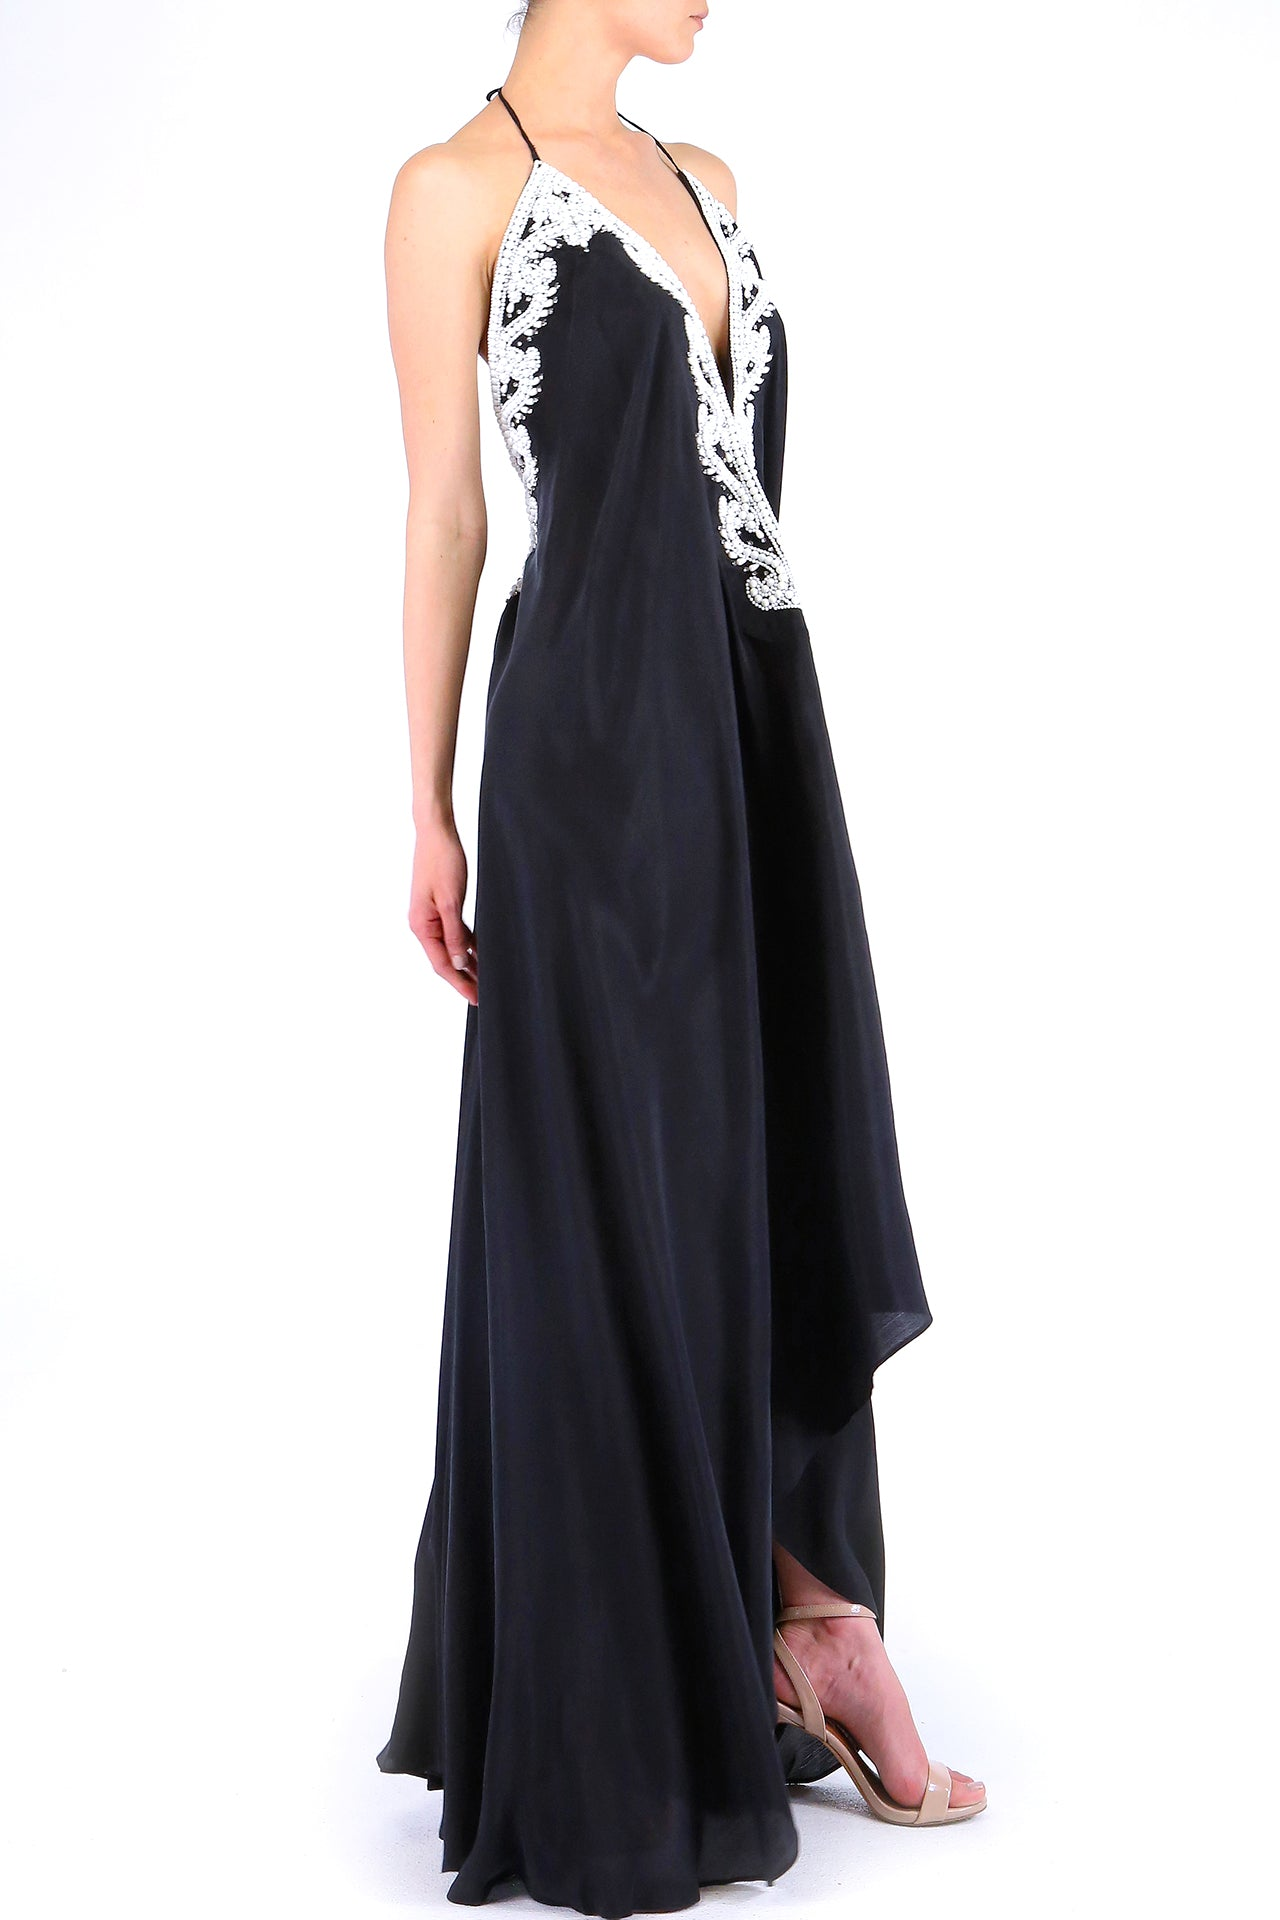 Backless Maxi In Caviar Black White Embellised